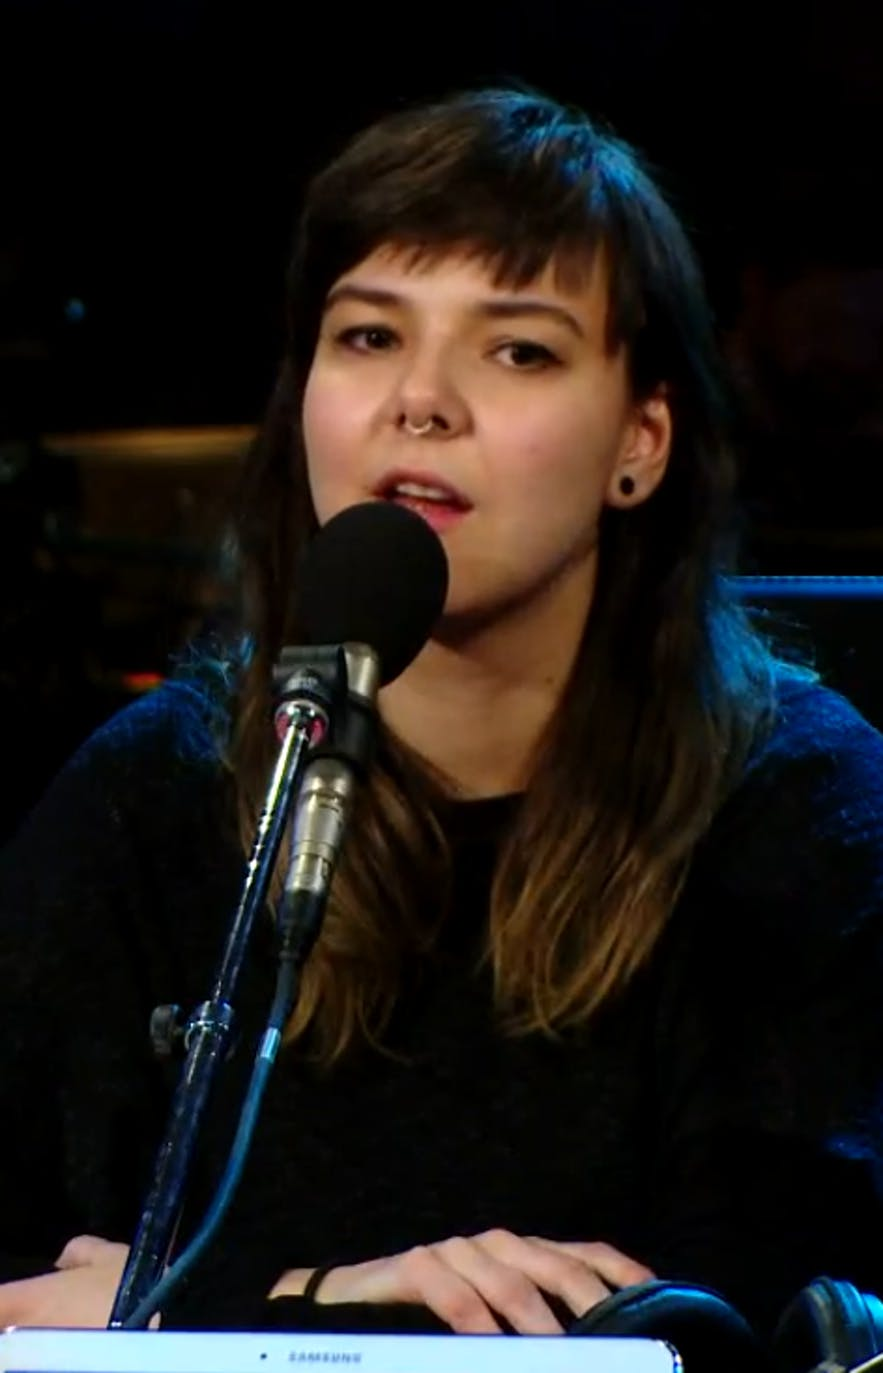 Nanna is the lead singer of Of Monsters and Men.